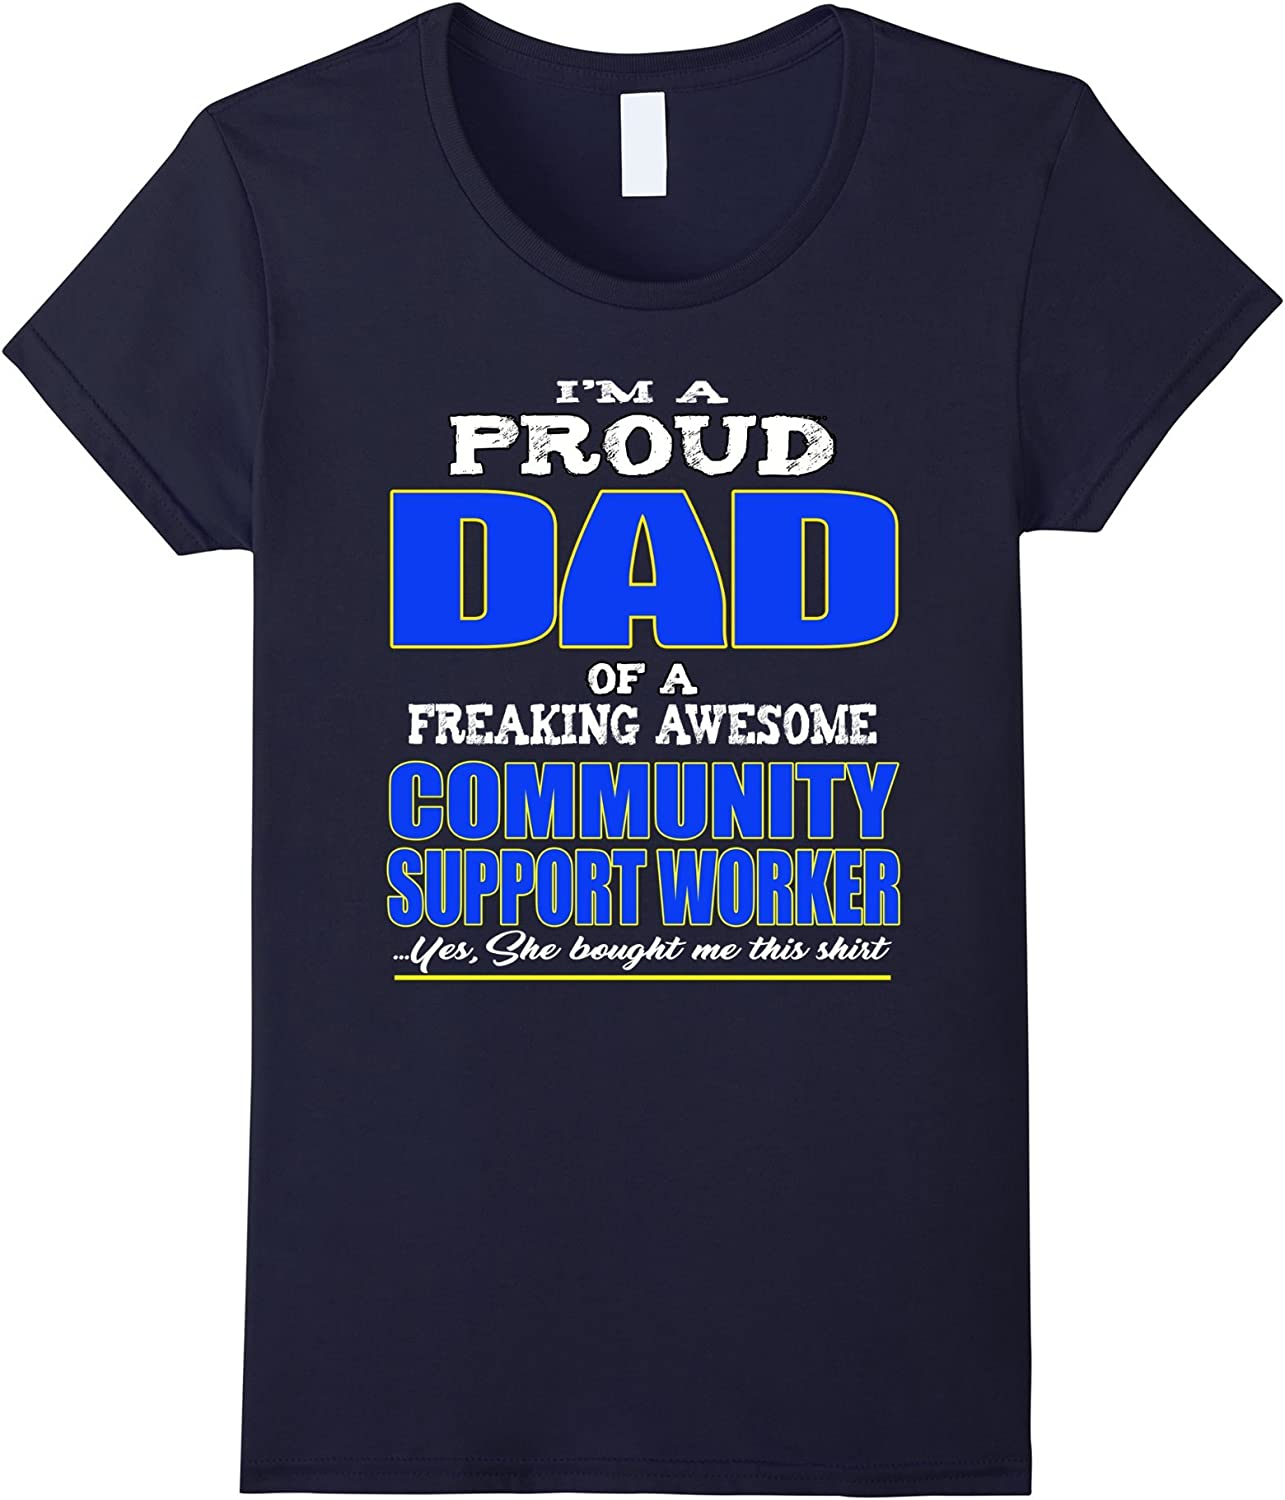 Women's Proud Dad Of Community Support Worker T-Shirt Medium Navy